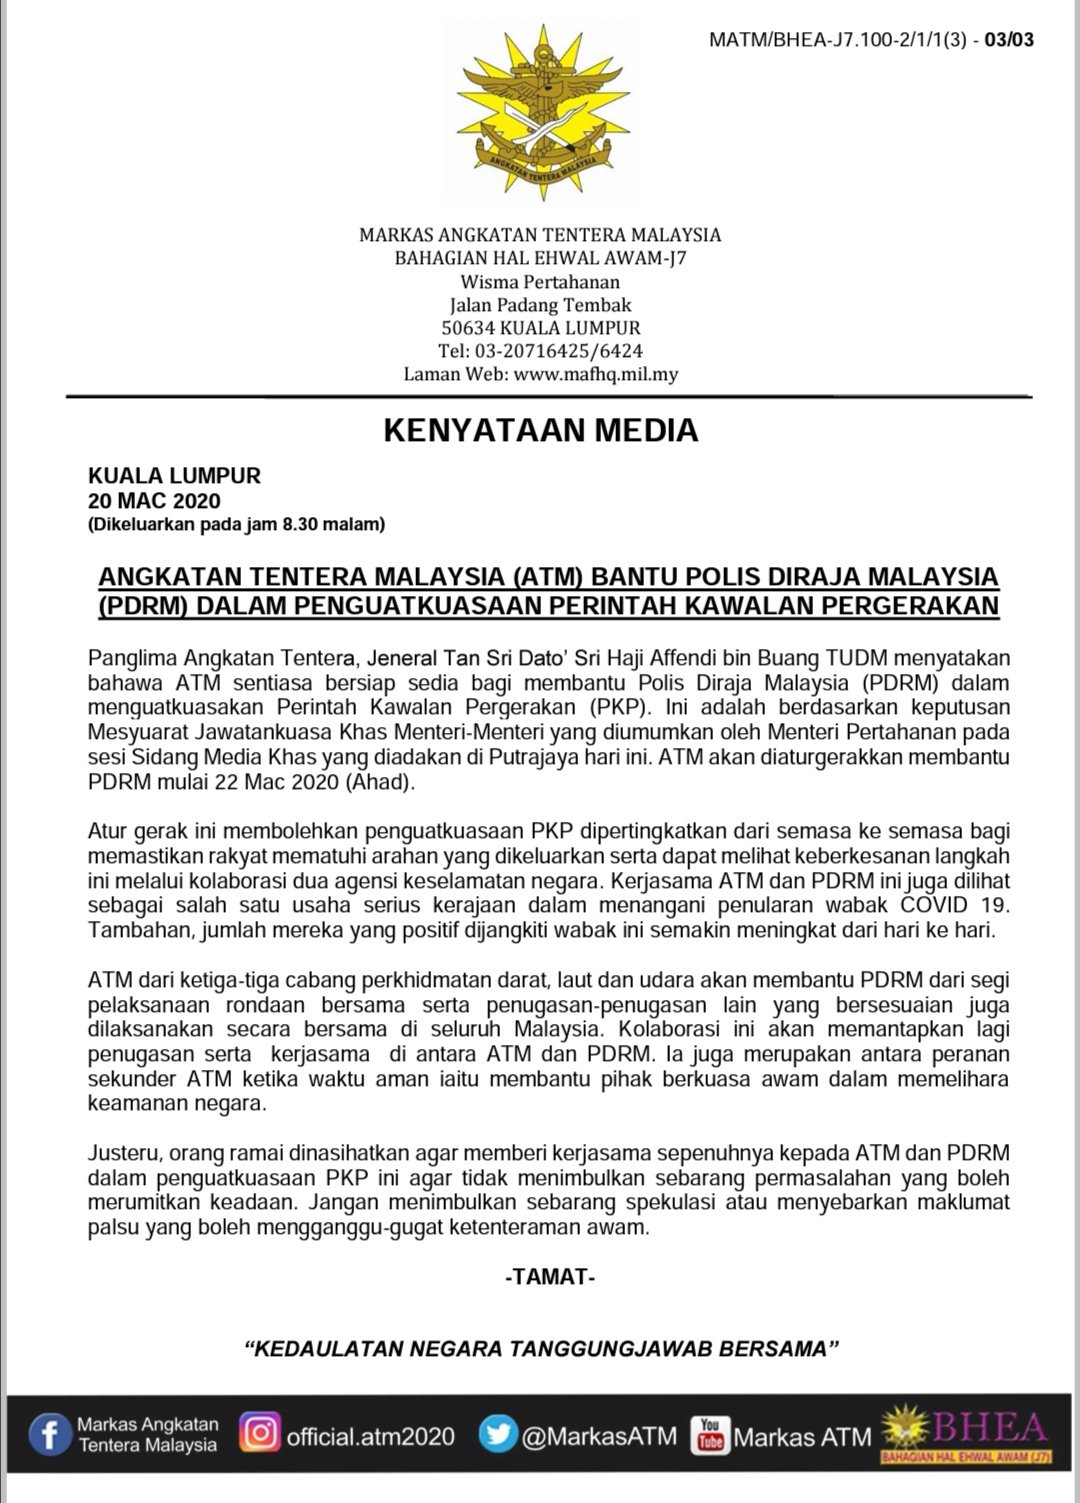 Alifah Zainuddin On Twitter The Malaysian Armed Forces Has Announced That All Three Branches Army Navy Air Force Will Give A Helping Hand To Police Forces Effective This Sunday Https T Co Uejgvsatnh